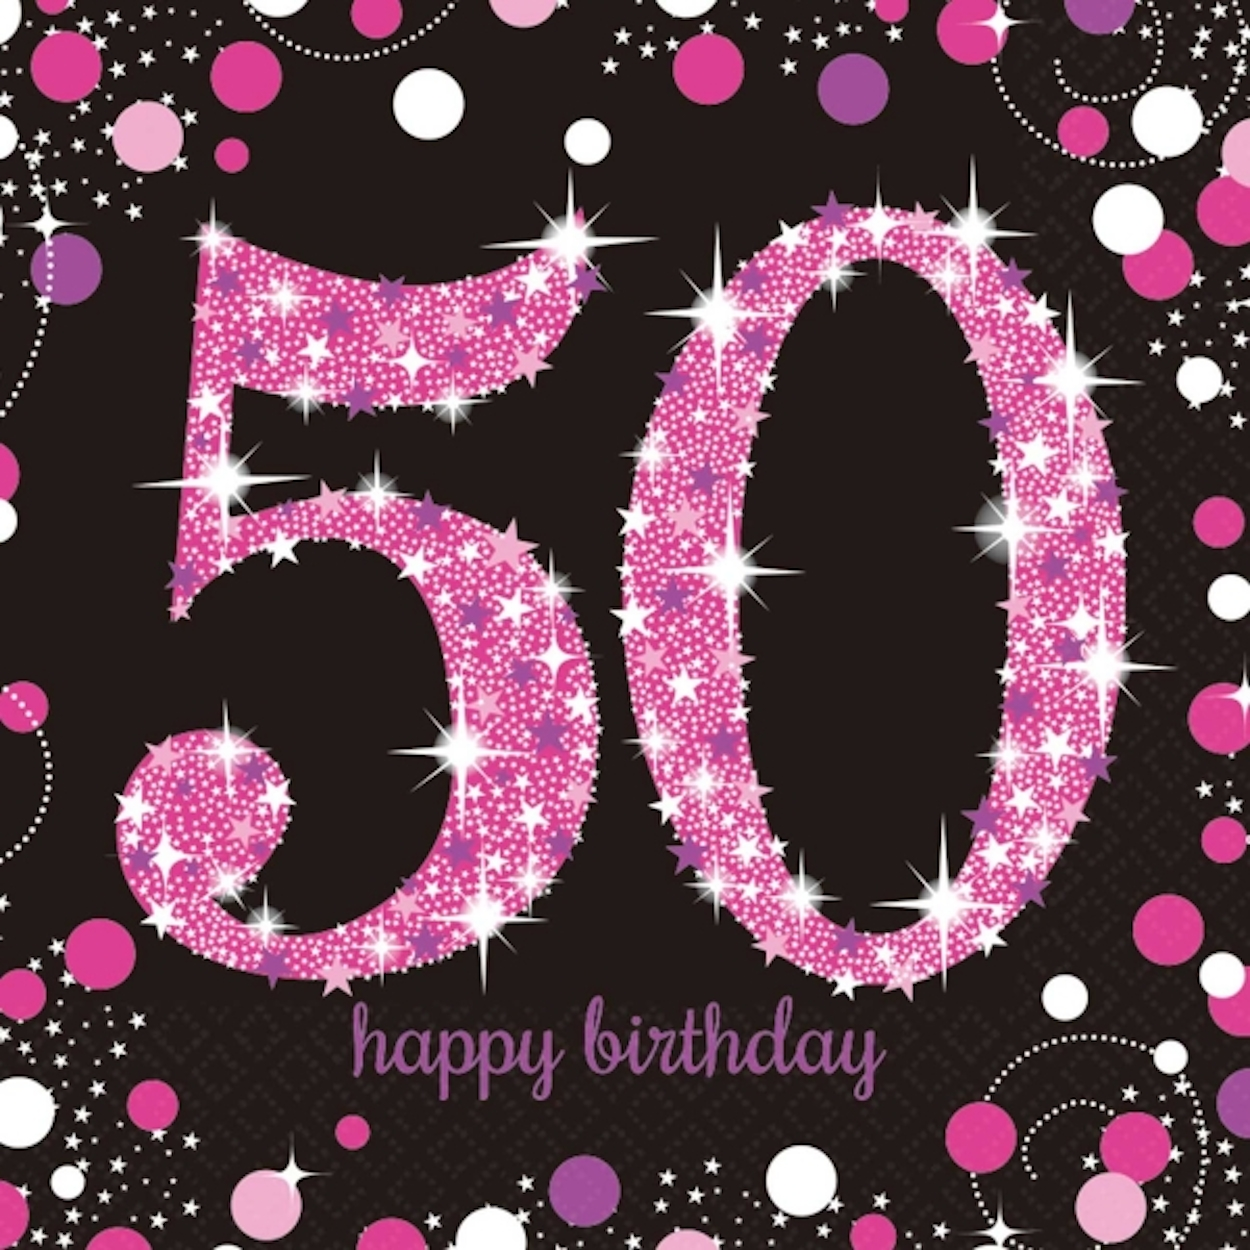 Details About 16 X Pink Celebration Age 50 Napkins Black 50th Birthday FREE PP